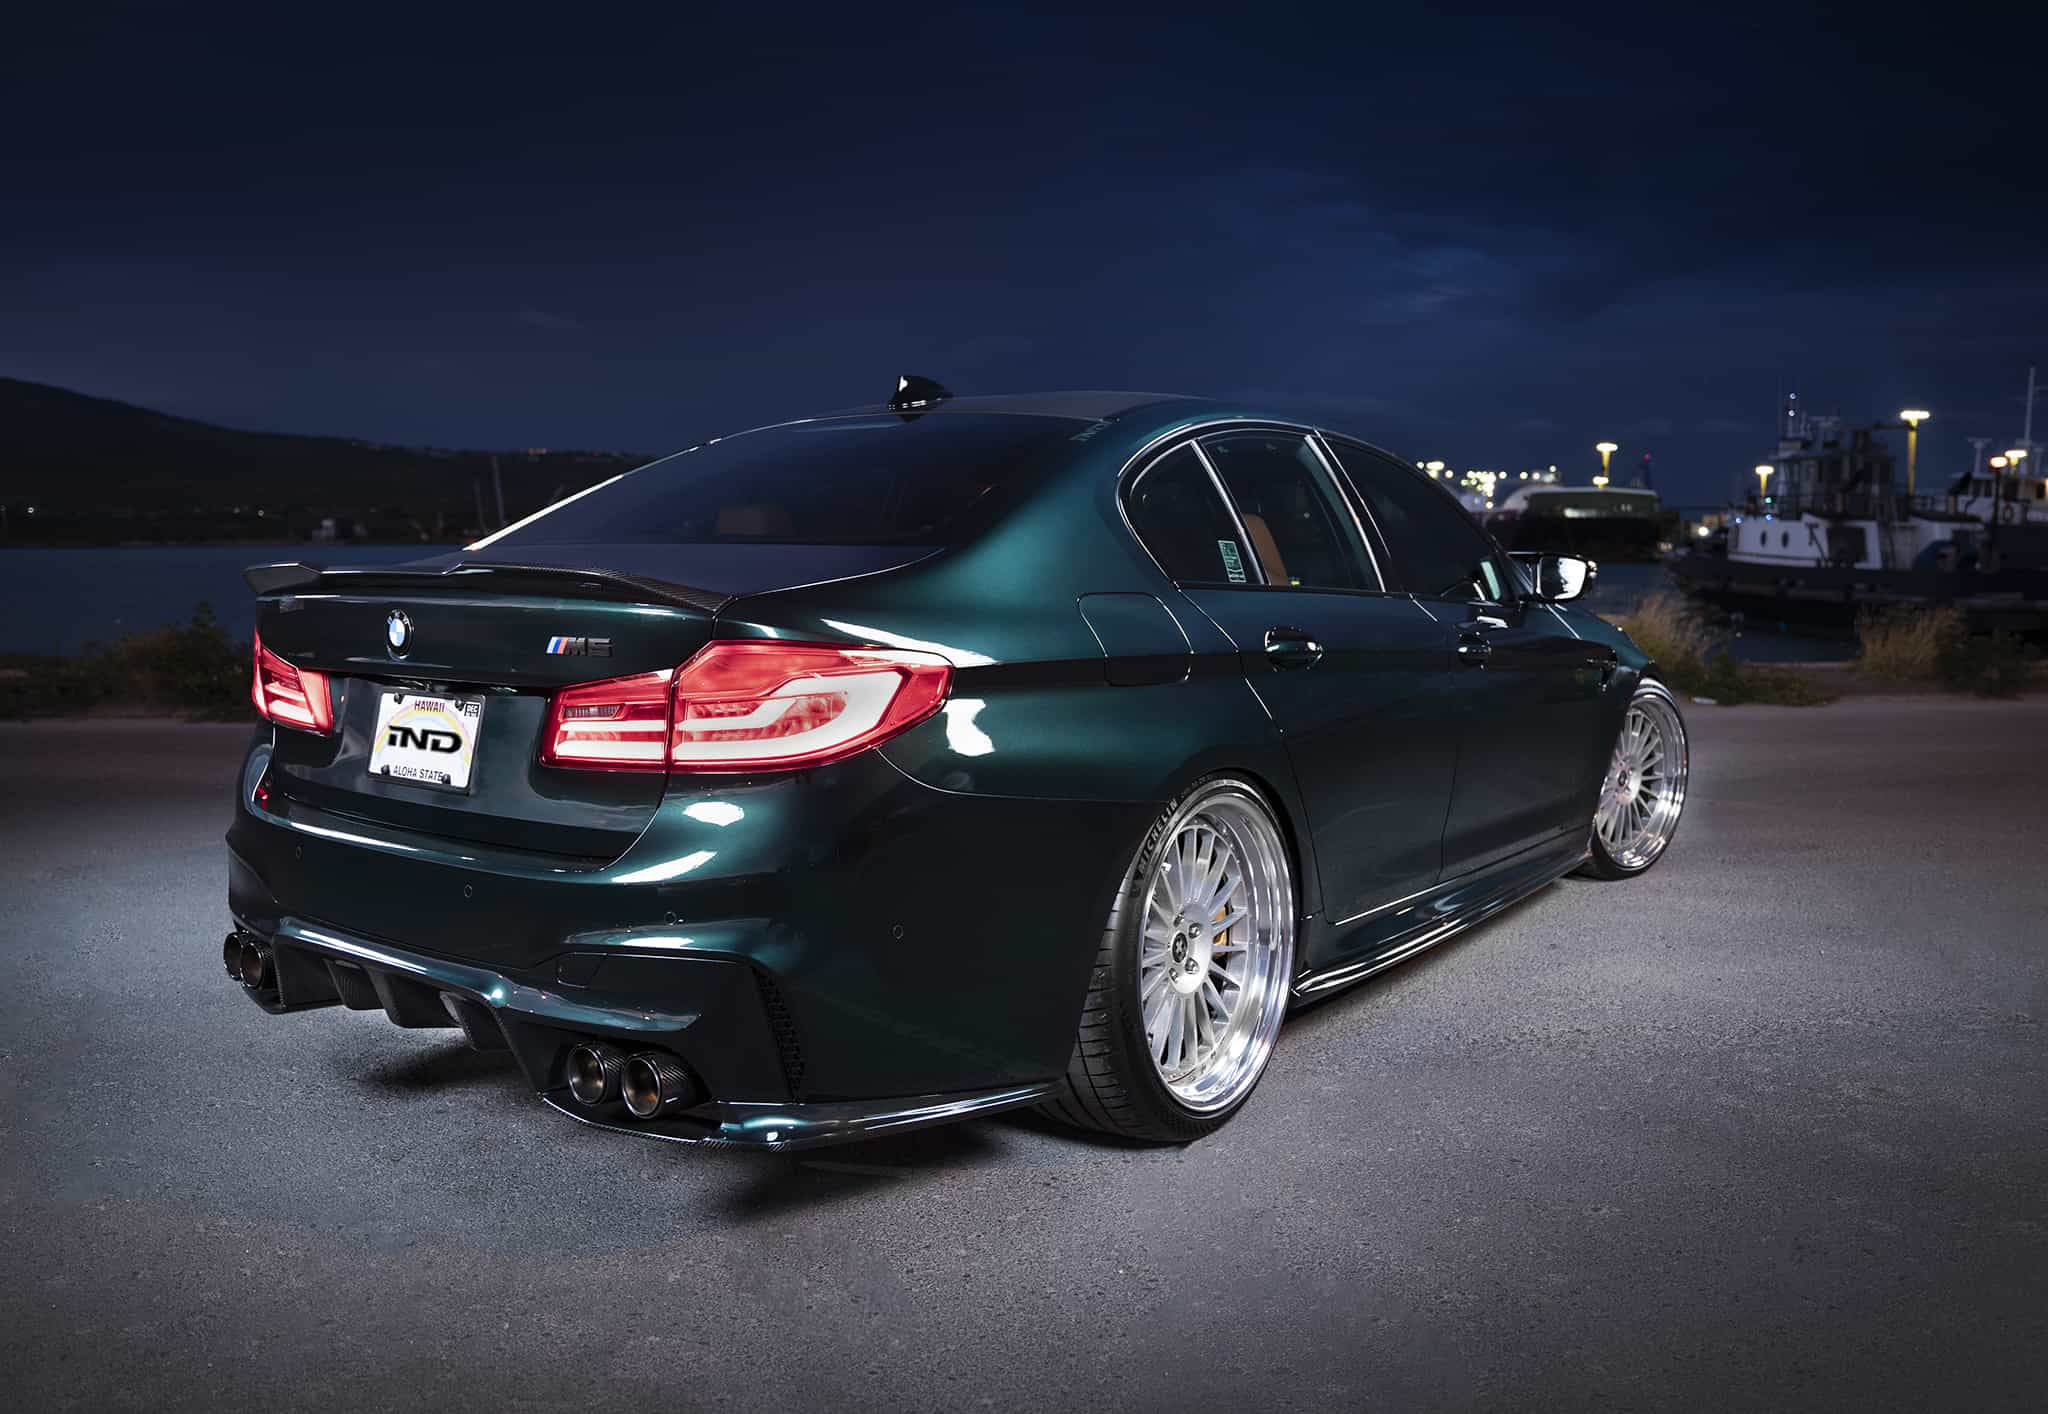 BMW M5 F90 With 3D Design Aero And HRE Wheels